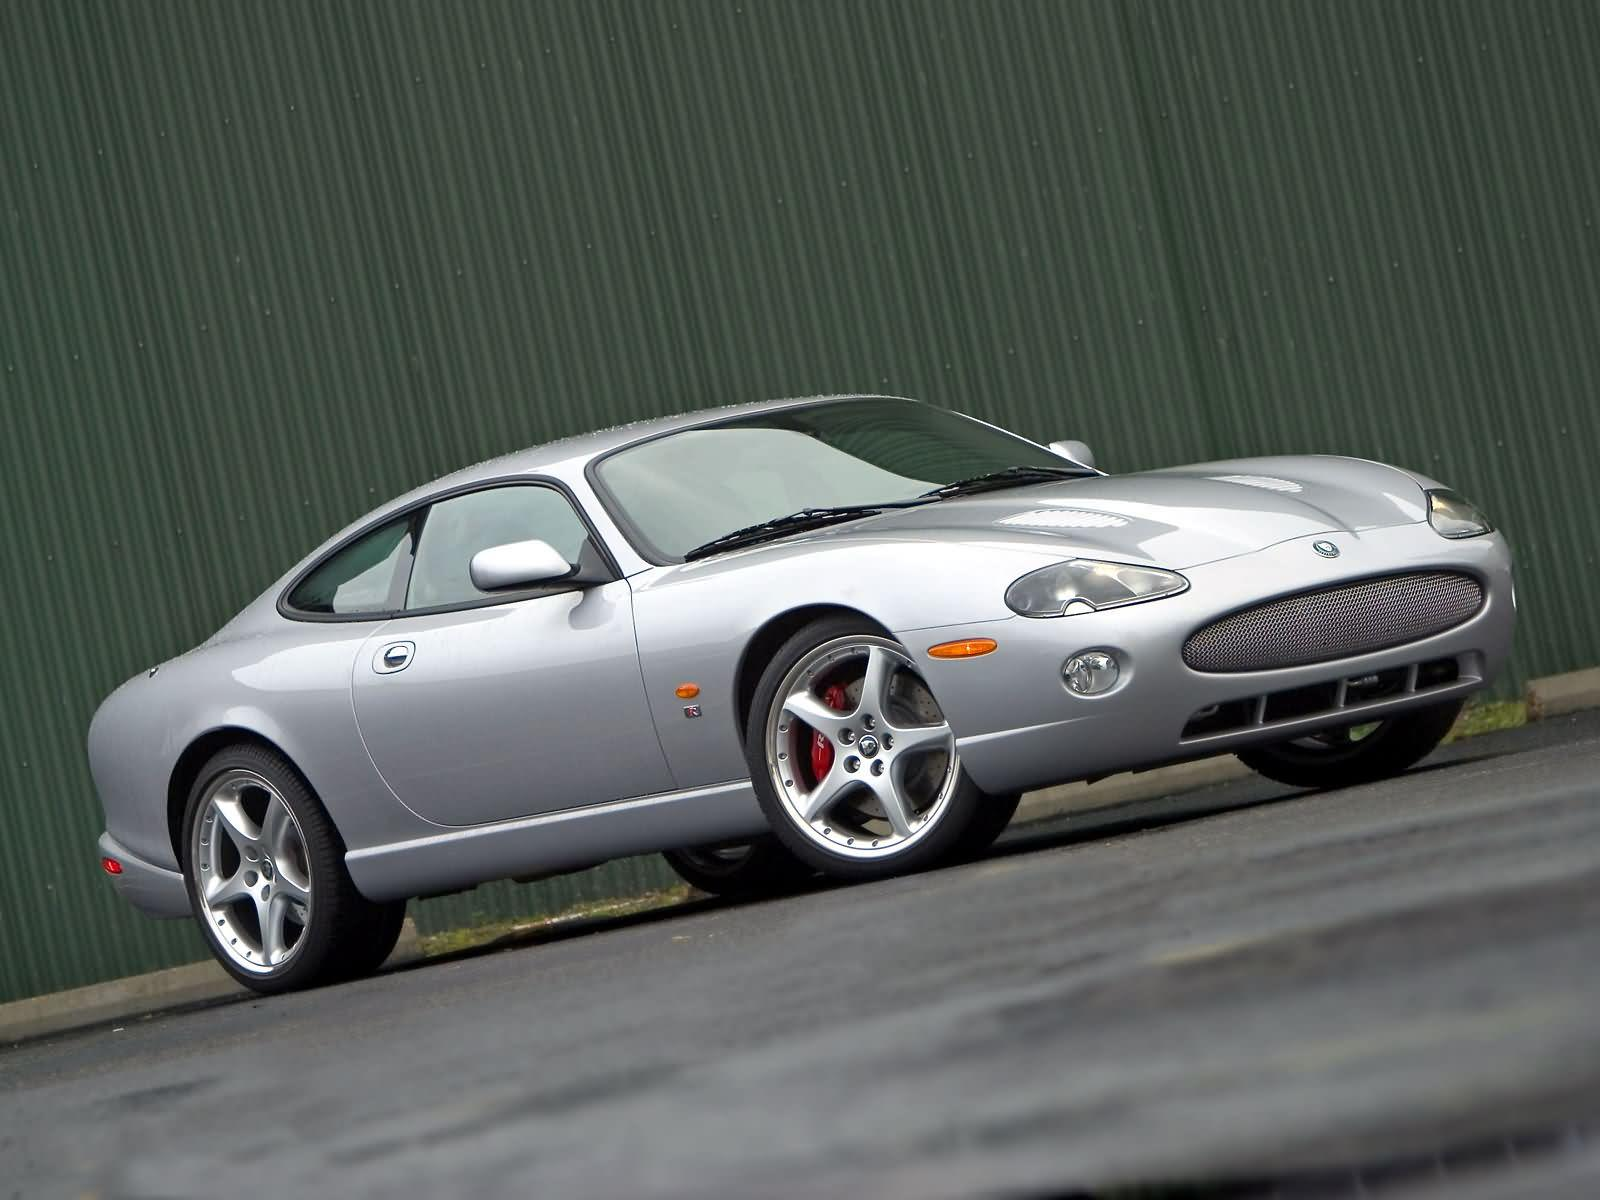 2005 Jaguar Xk-series #1